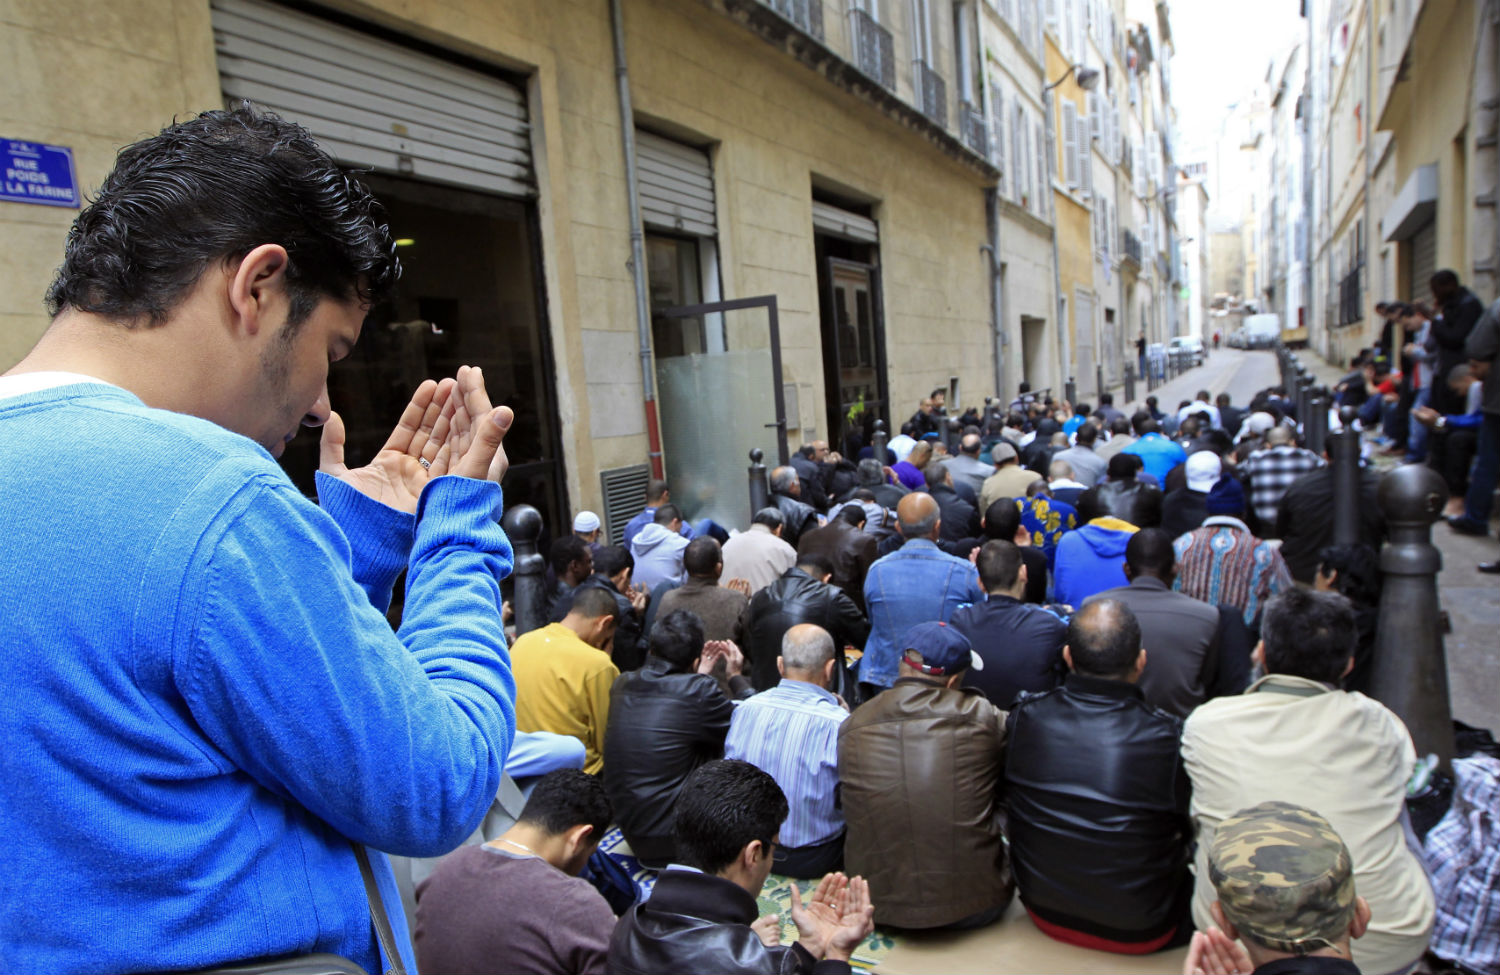 Muslims-pray-near-the-al-Quds-mosque-in-Marseille-France